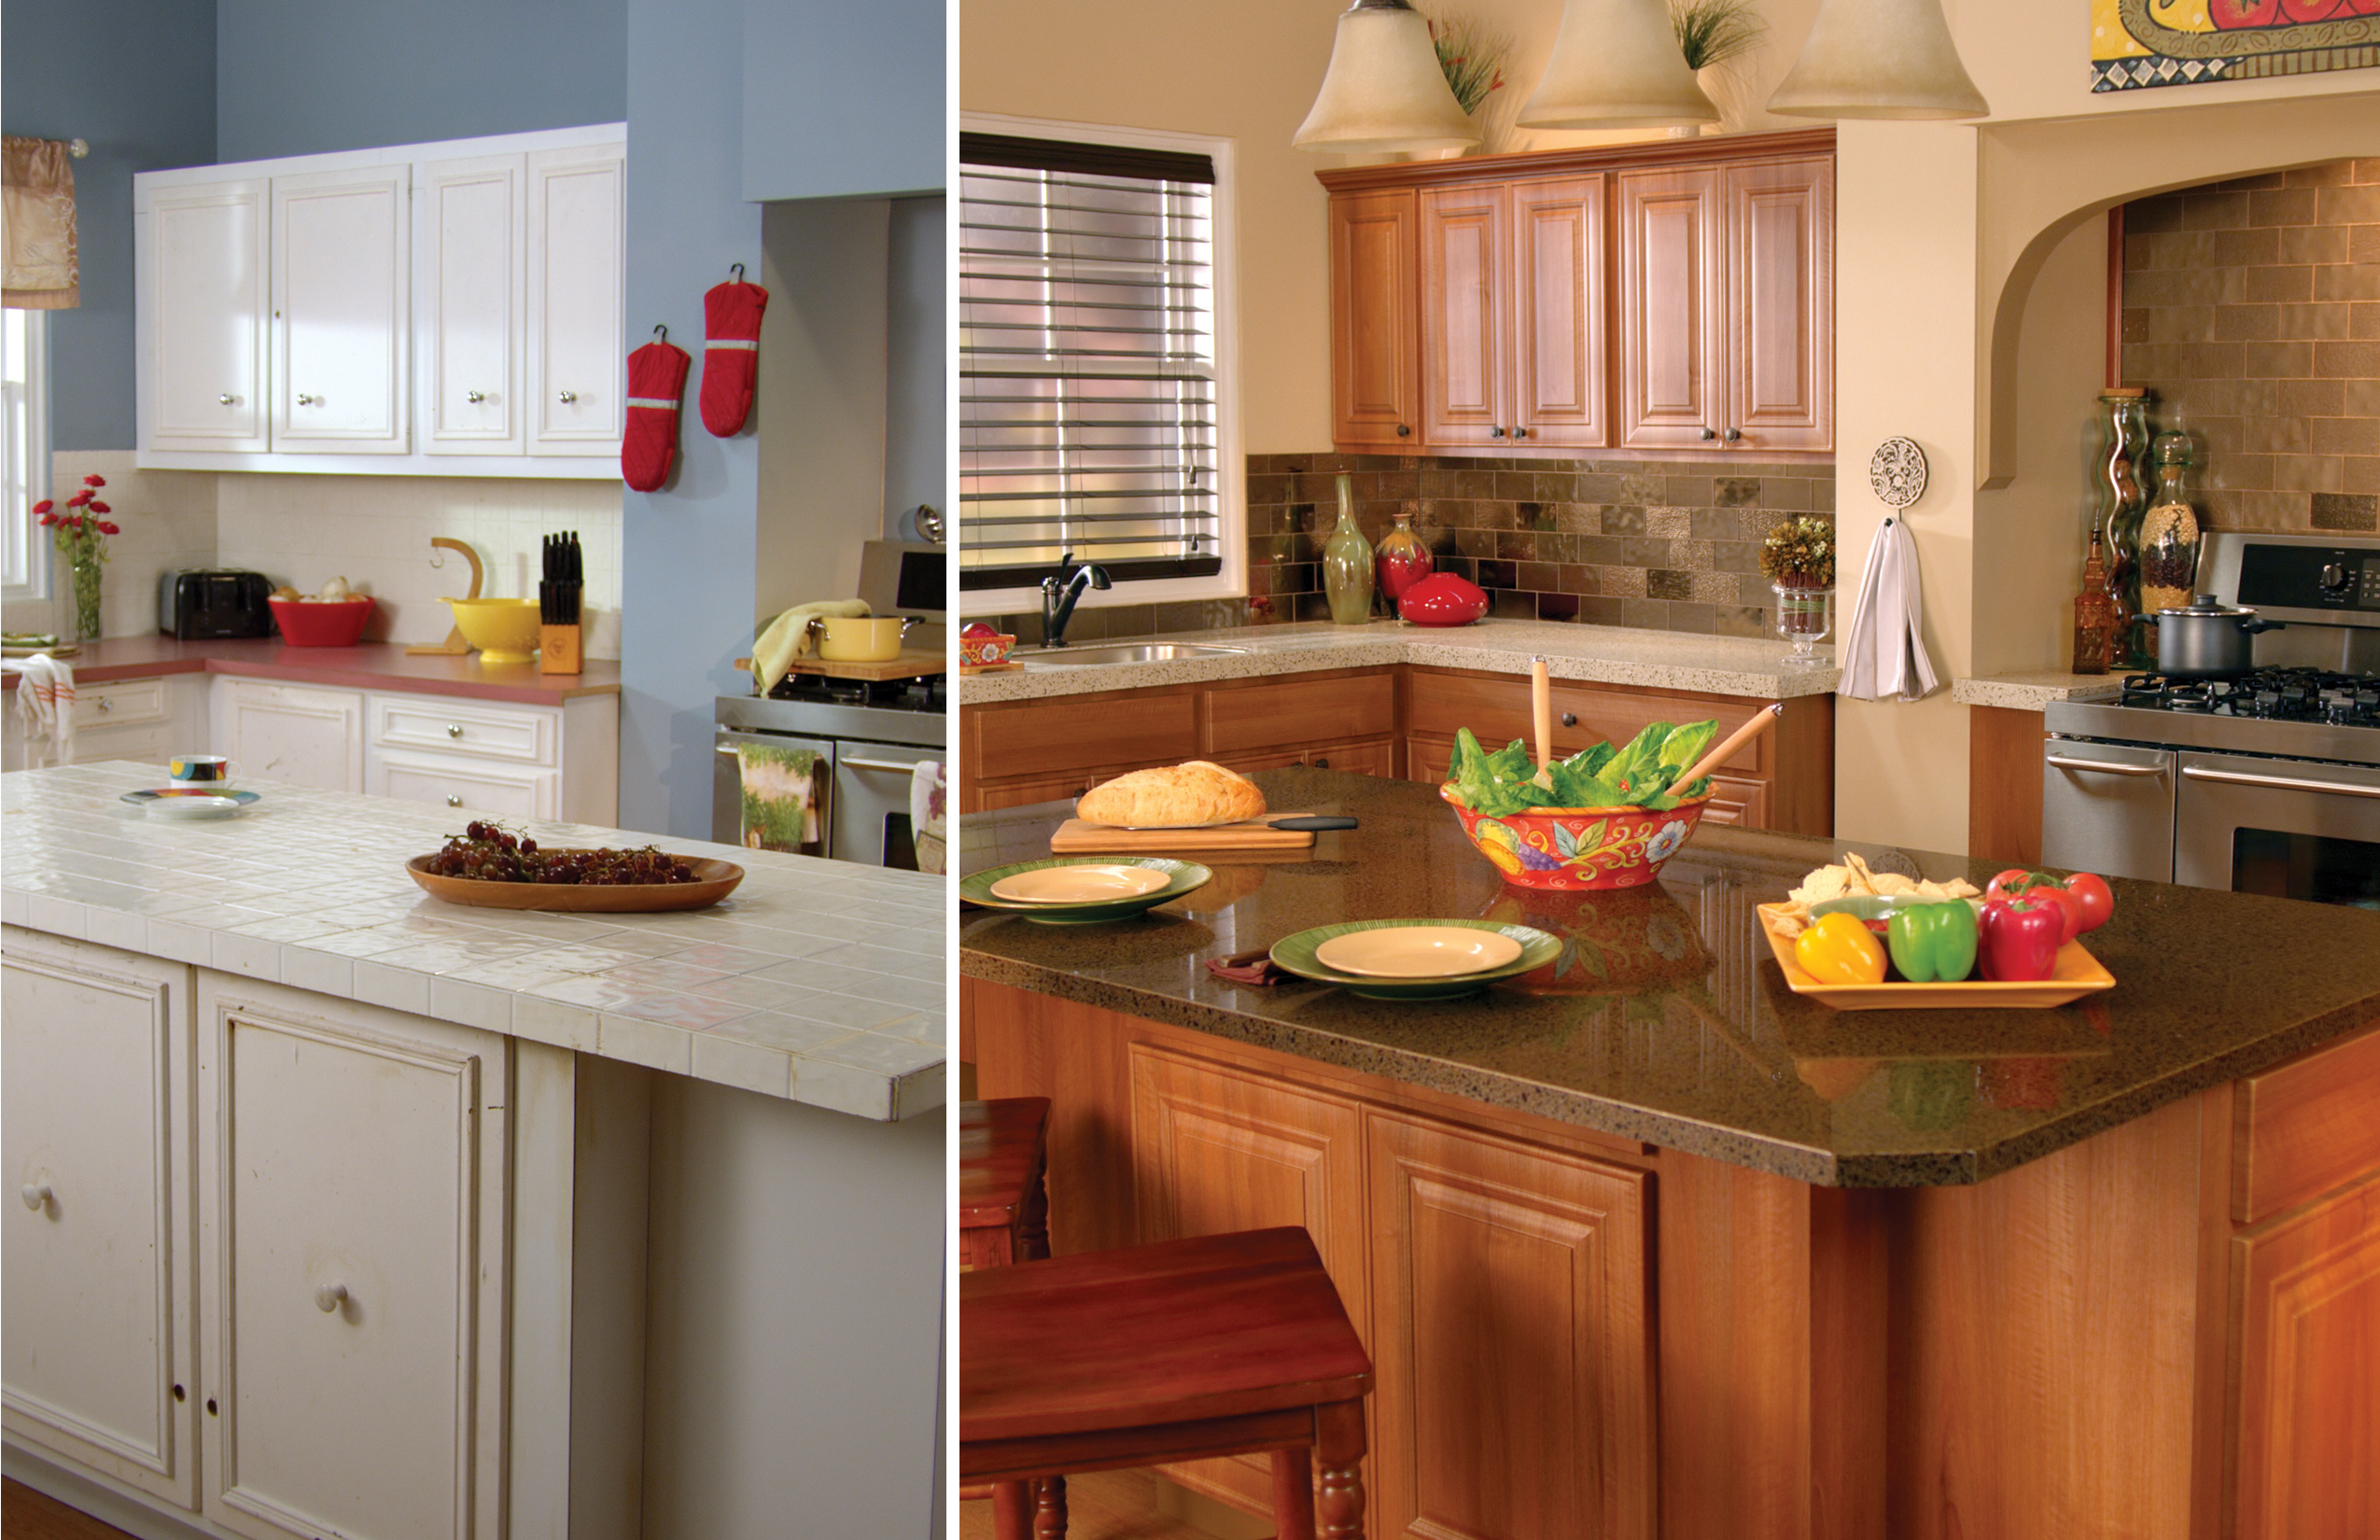 granite transformations south jersey - kitchen remodeling images